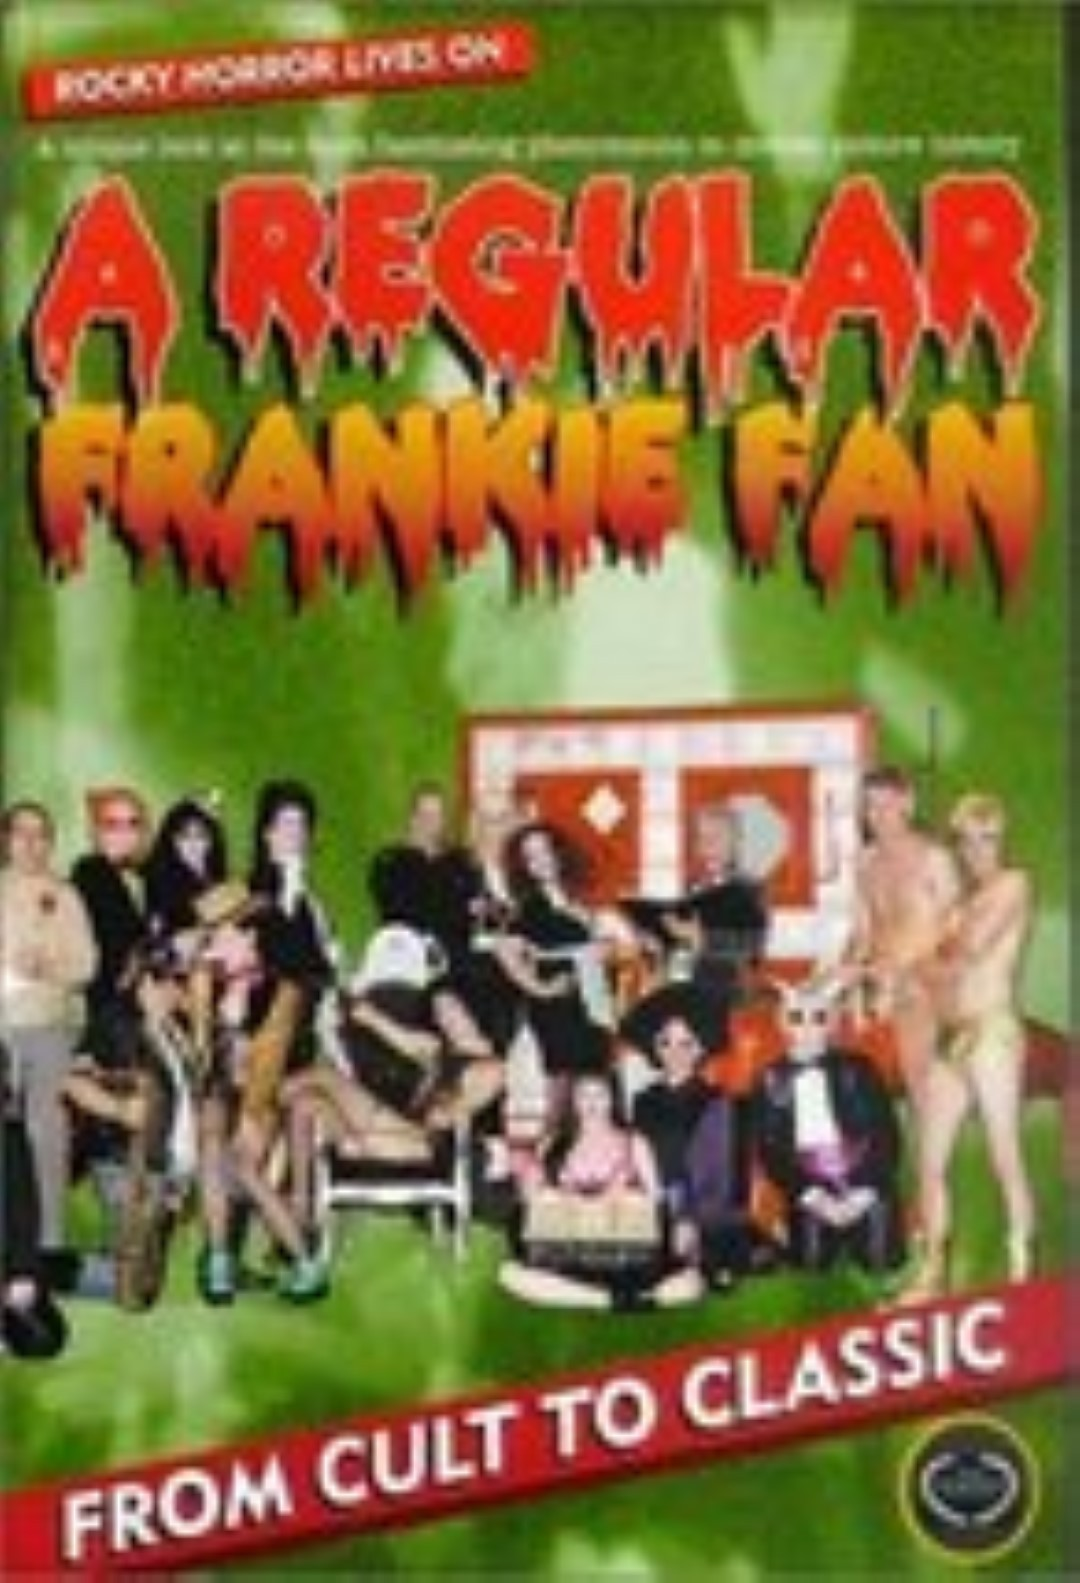 A Regular Frankie Fan Dvd